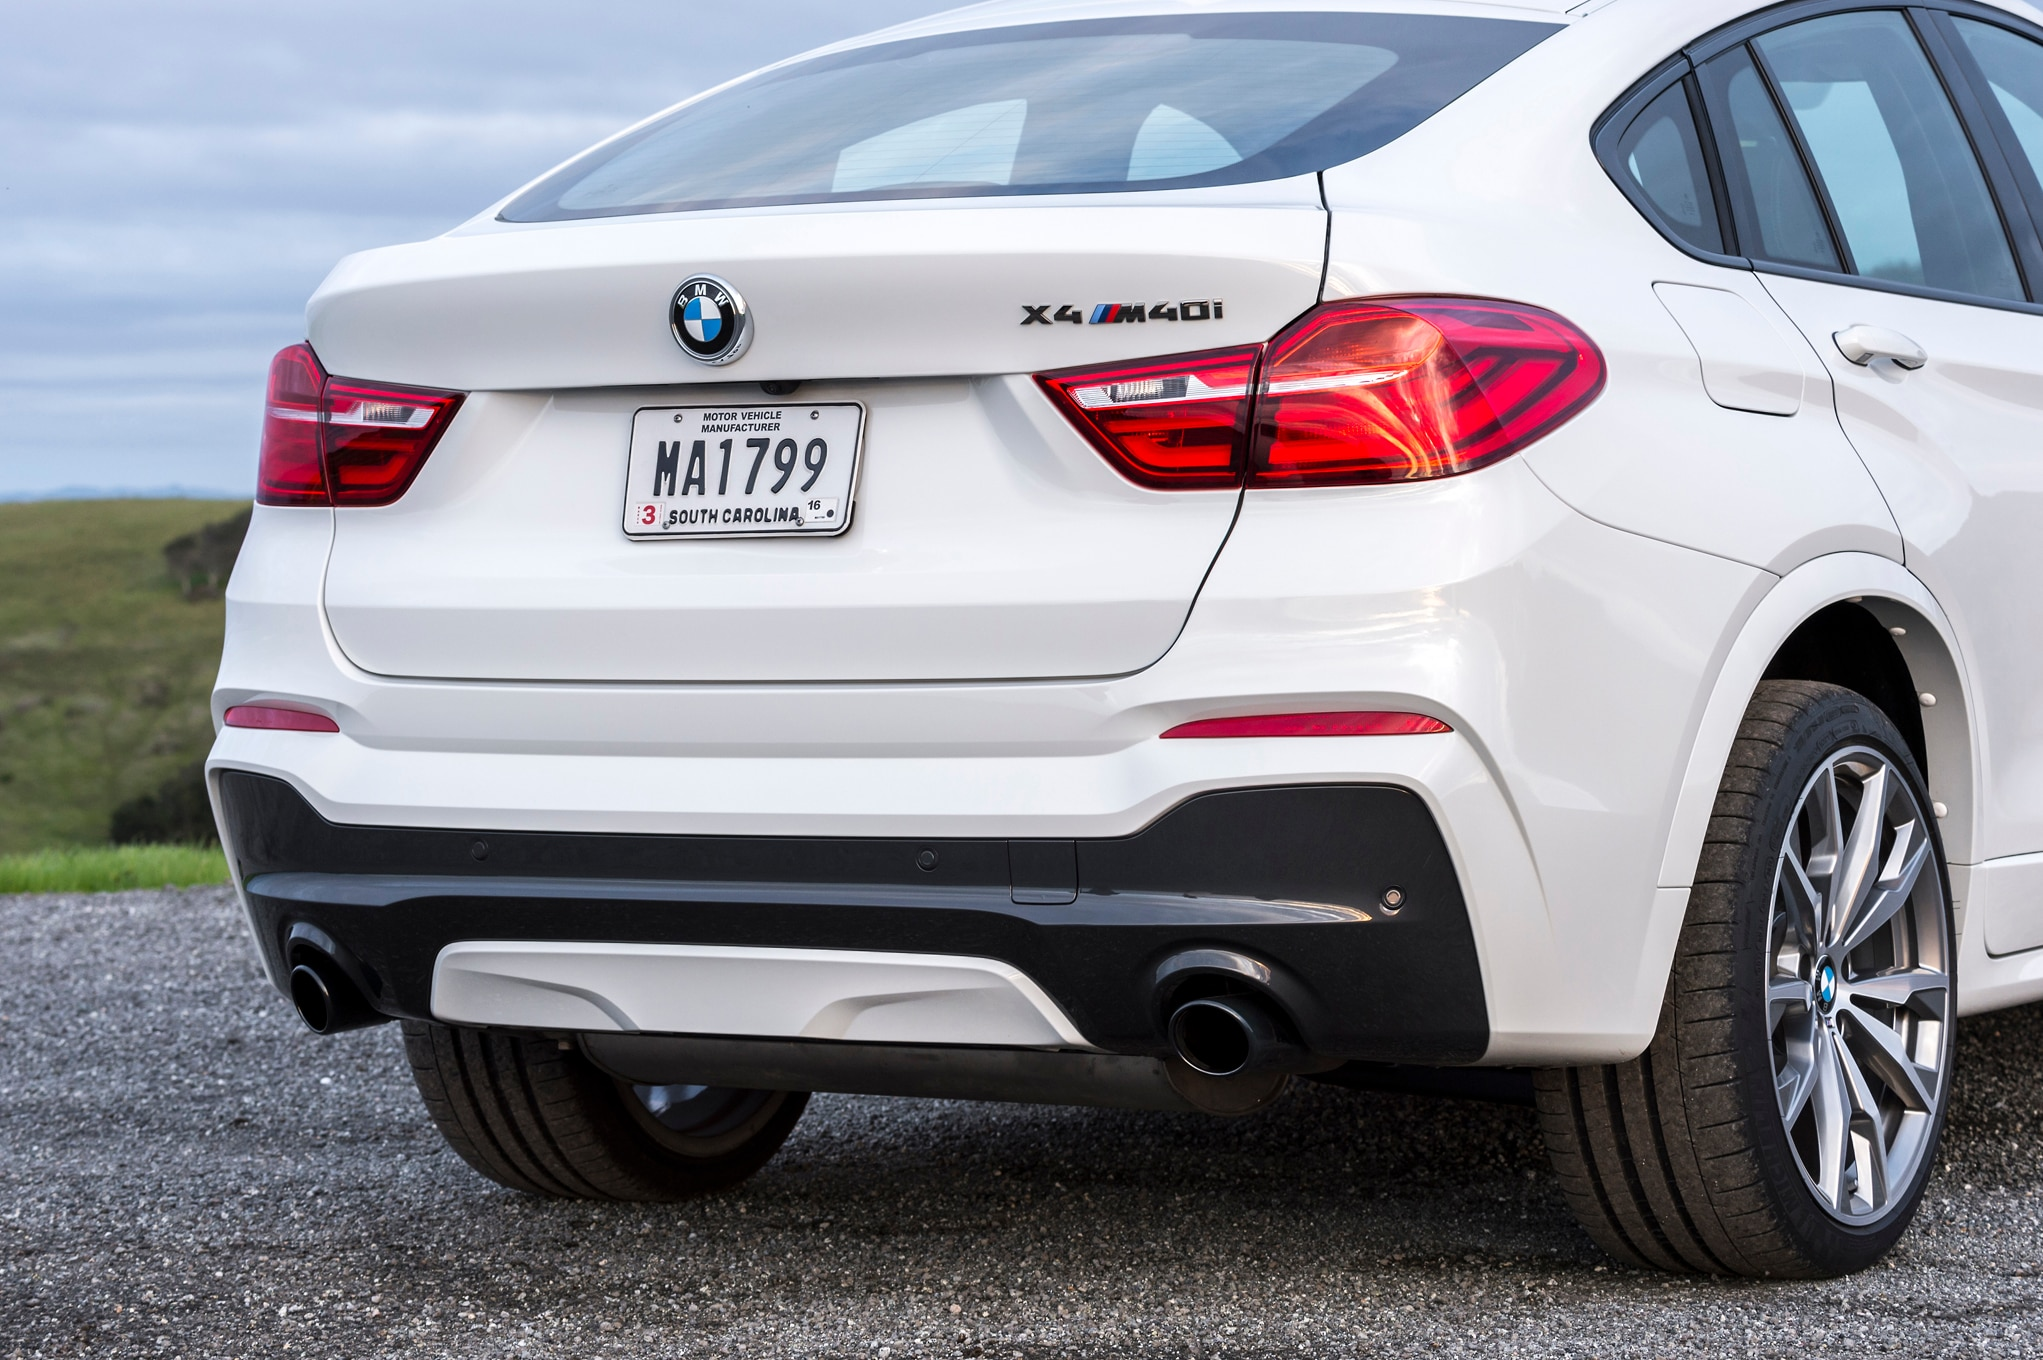 2016 bmw x4 m40i review. Black Bedroom Furniture Sets. Home Design Ideas